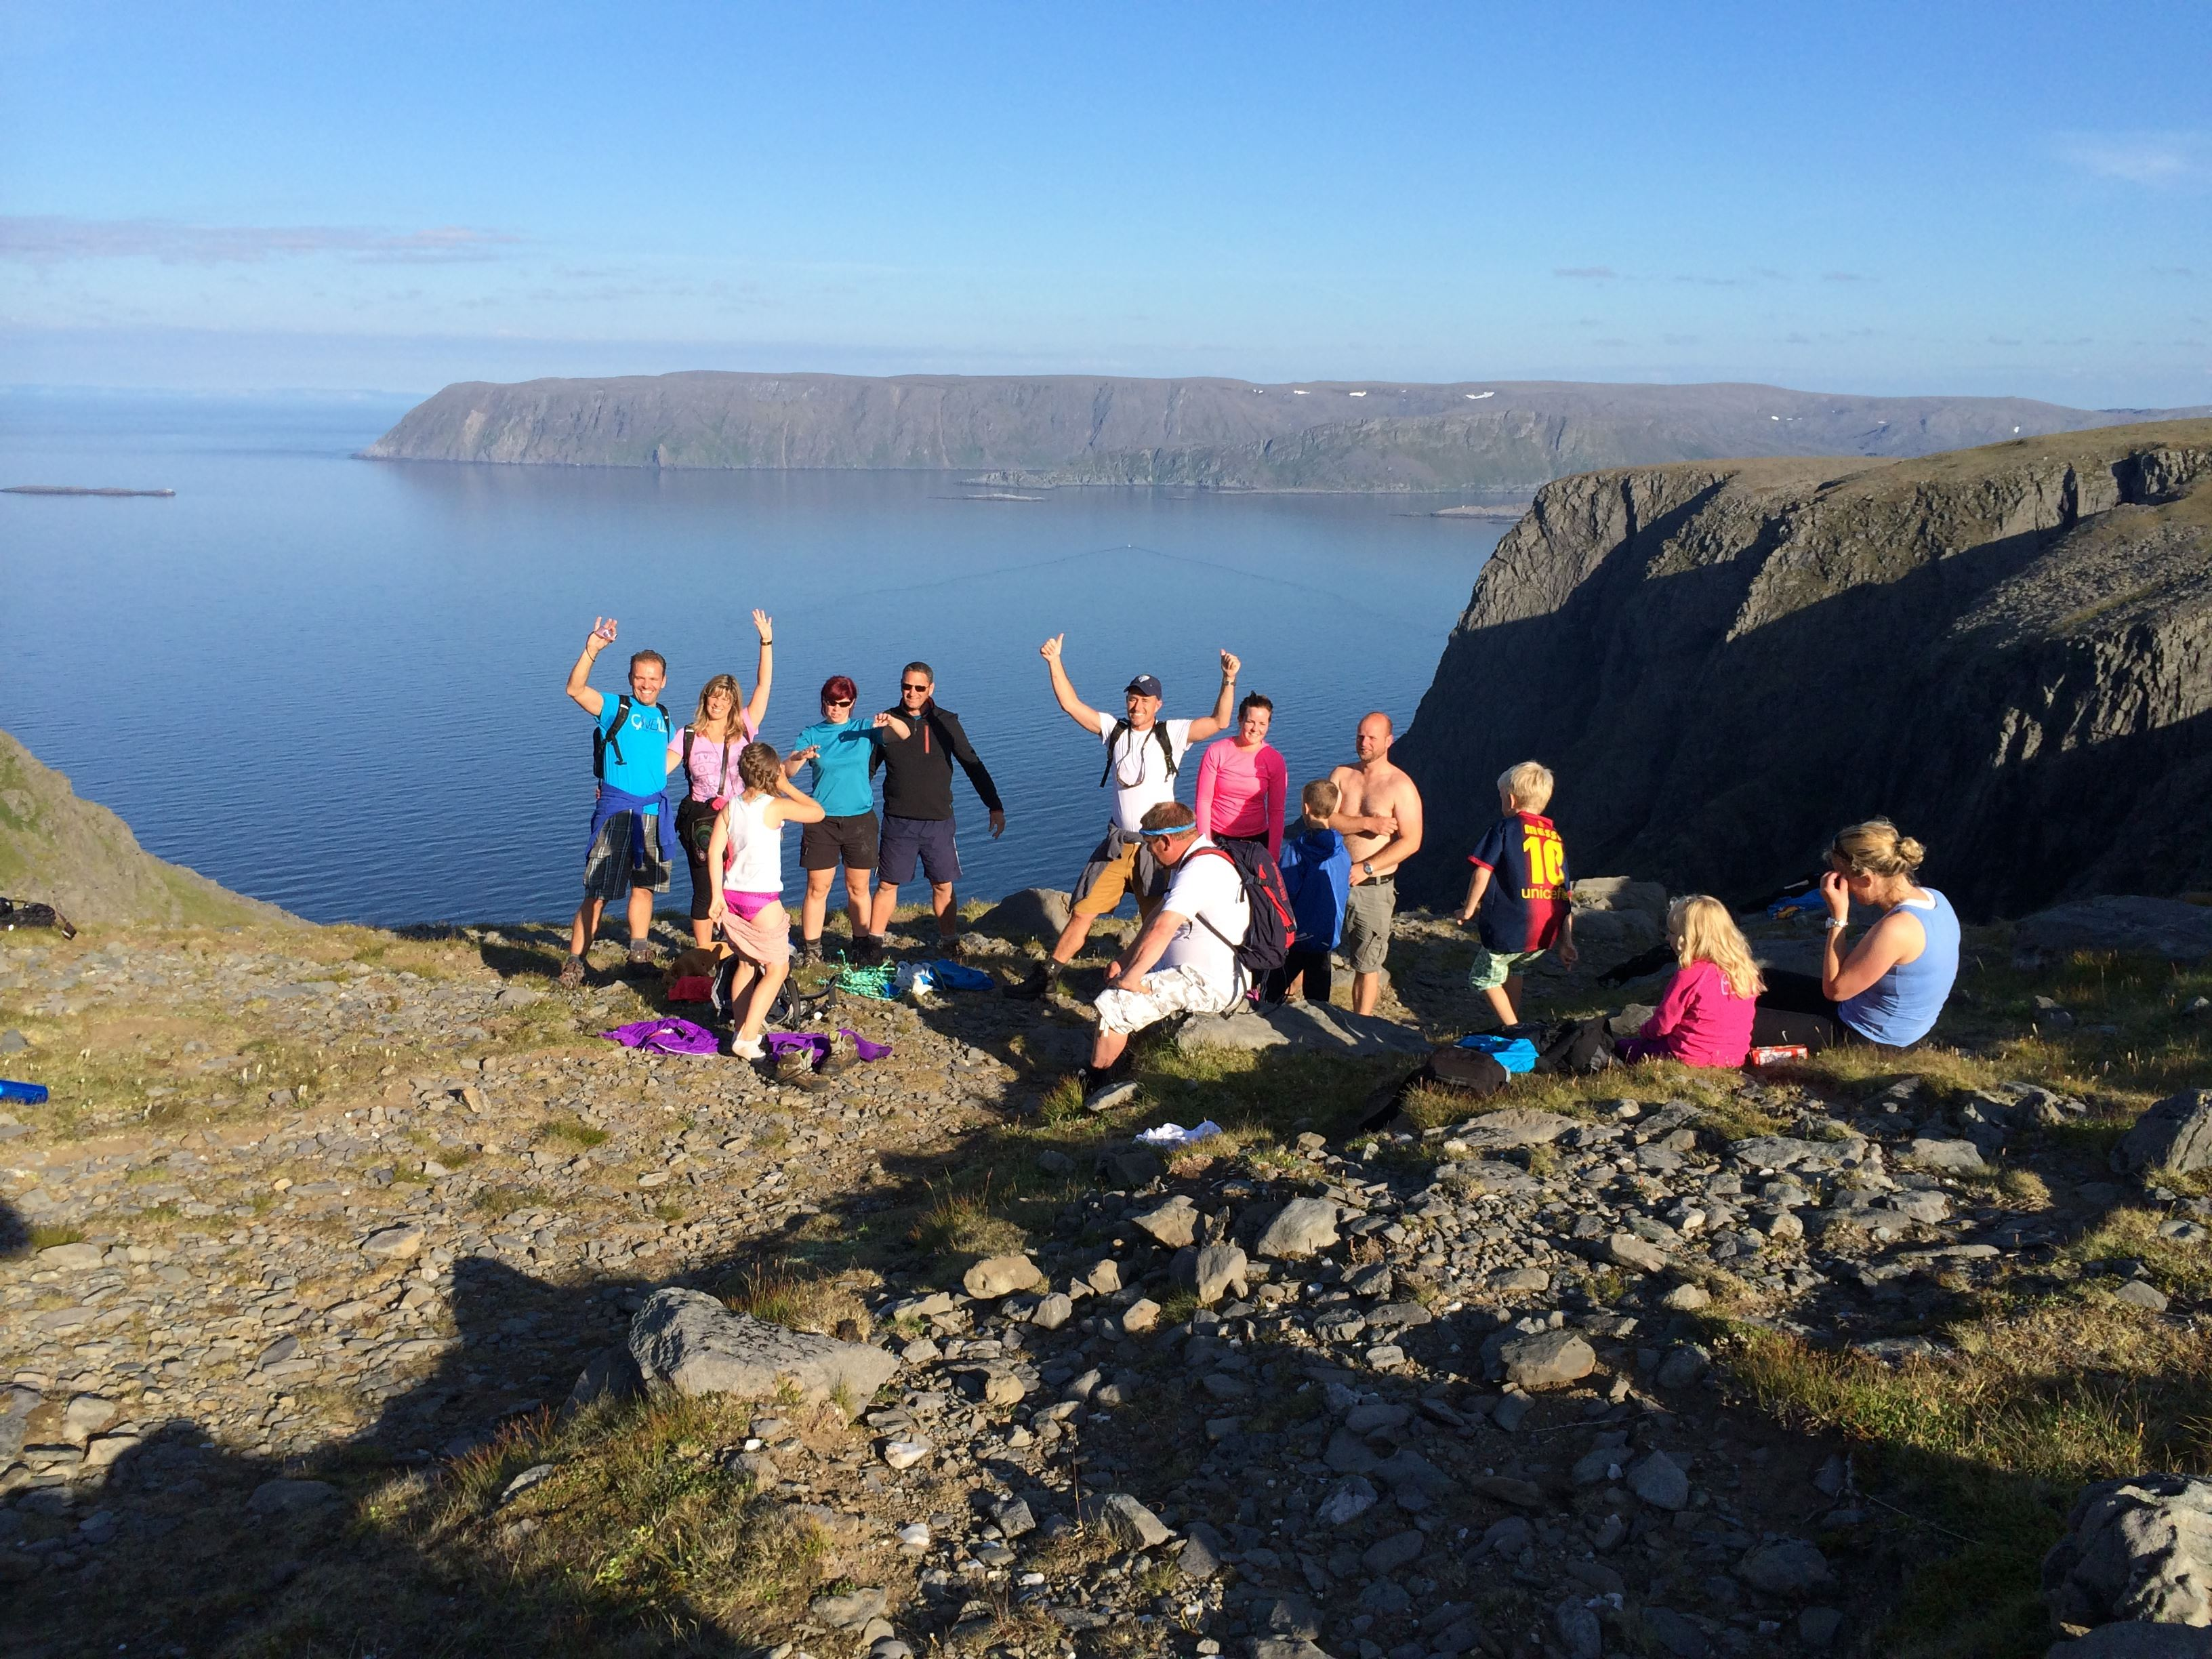 Hornvika - The Original North Cape Tour - with return transfer from Honningsvåg if required